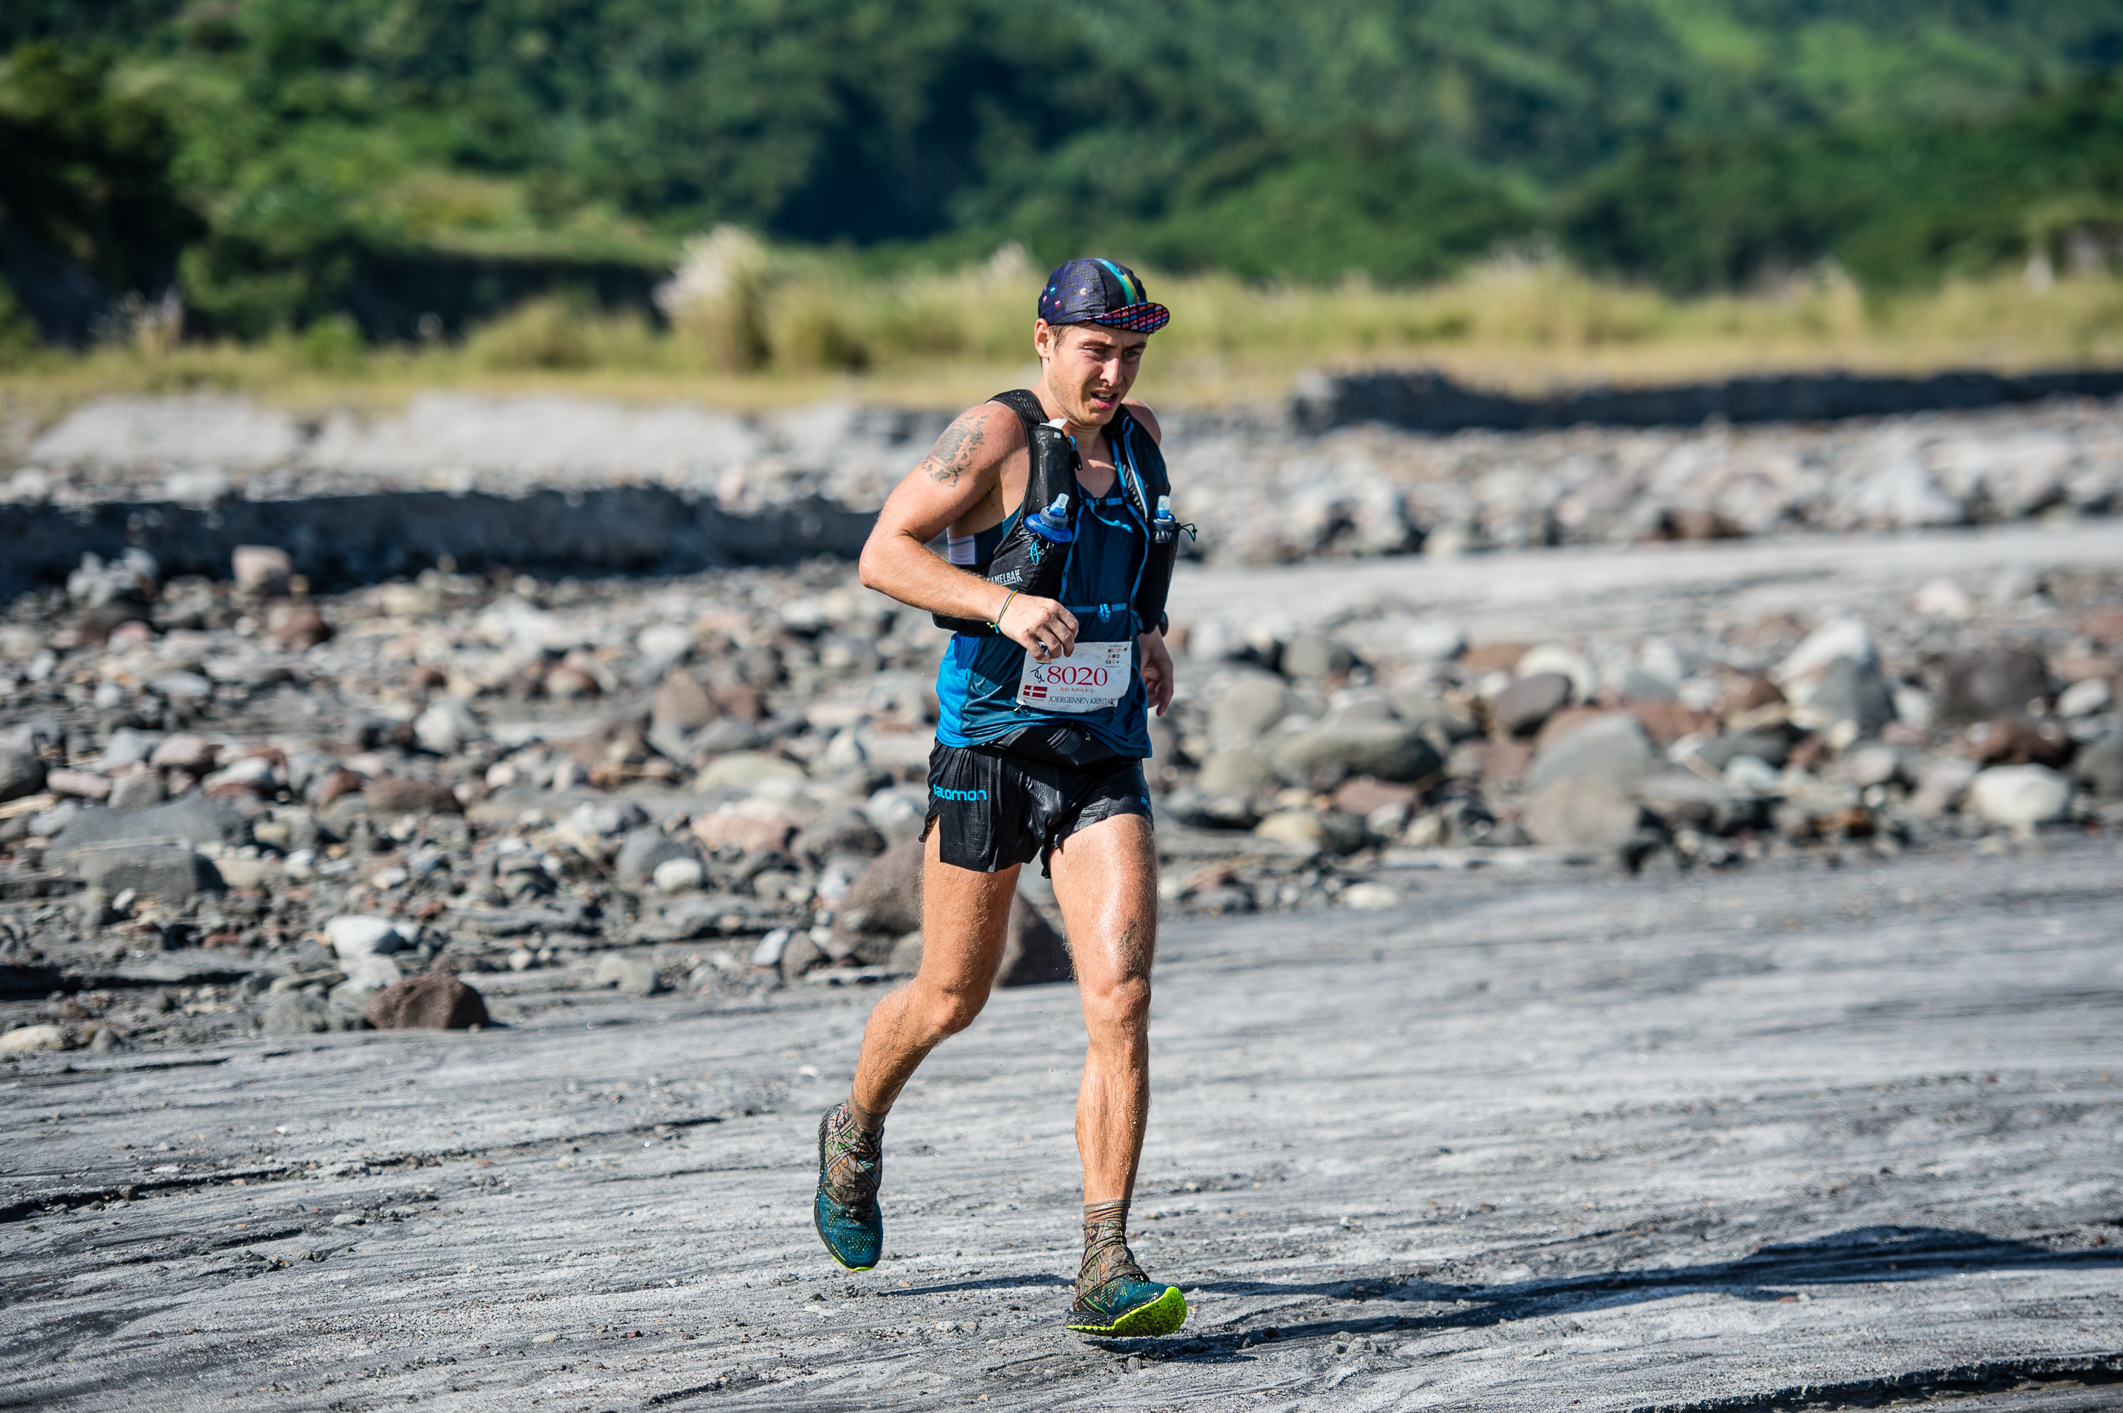 Kristian Joergensen dominated the CM50 race this year